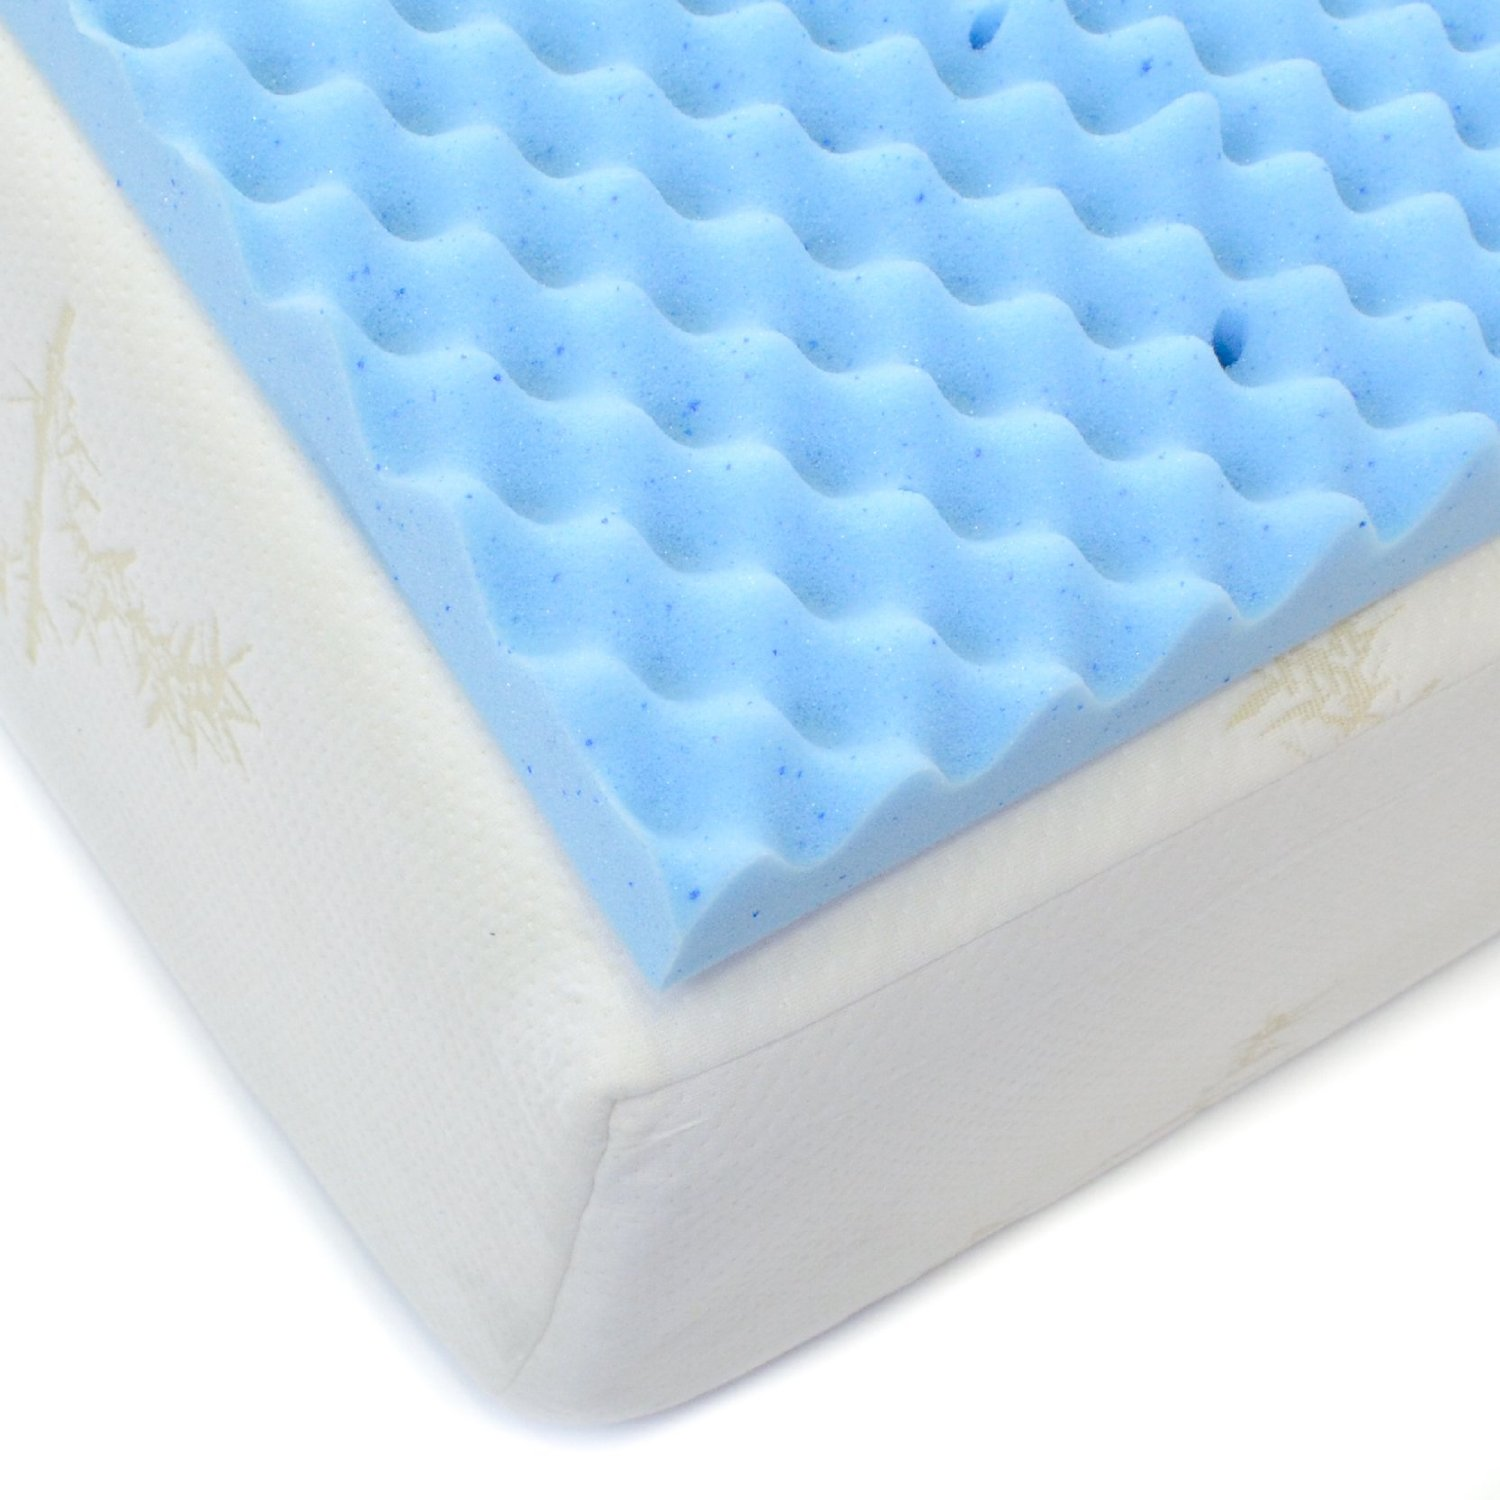 Egg crate foam mattress pad Bedding Egg Crate Gelinfused Memory Foam Mattress Milliard Bedding Egg Crate Gelinfused Memory Foam Mattress Topper Full Milliard